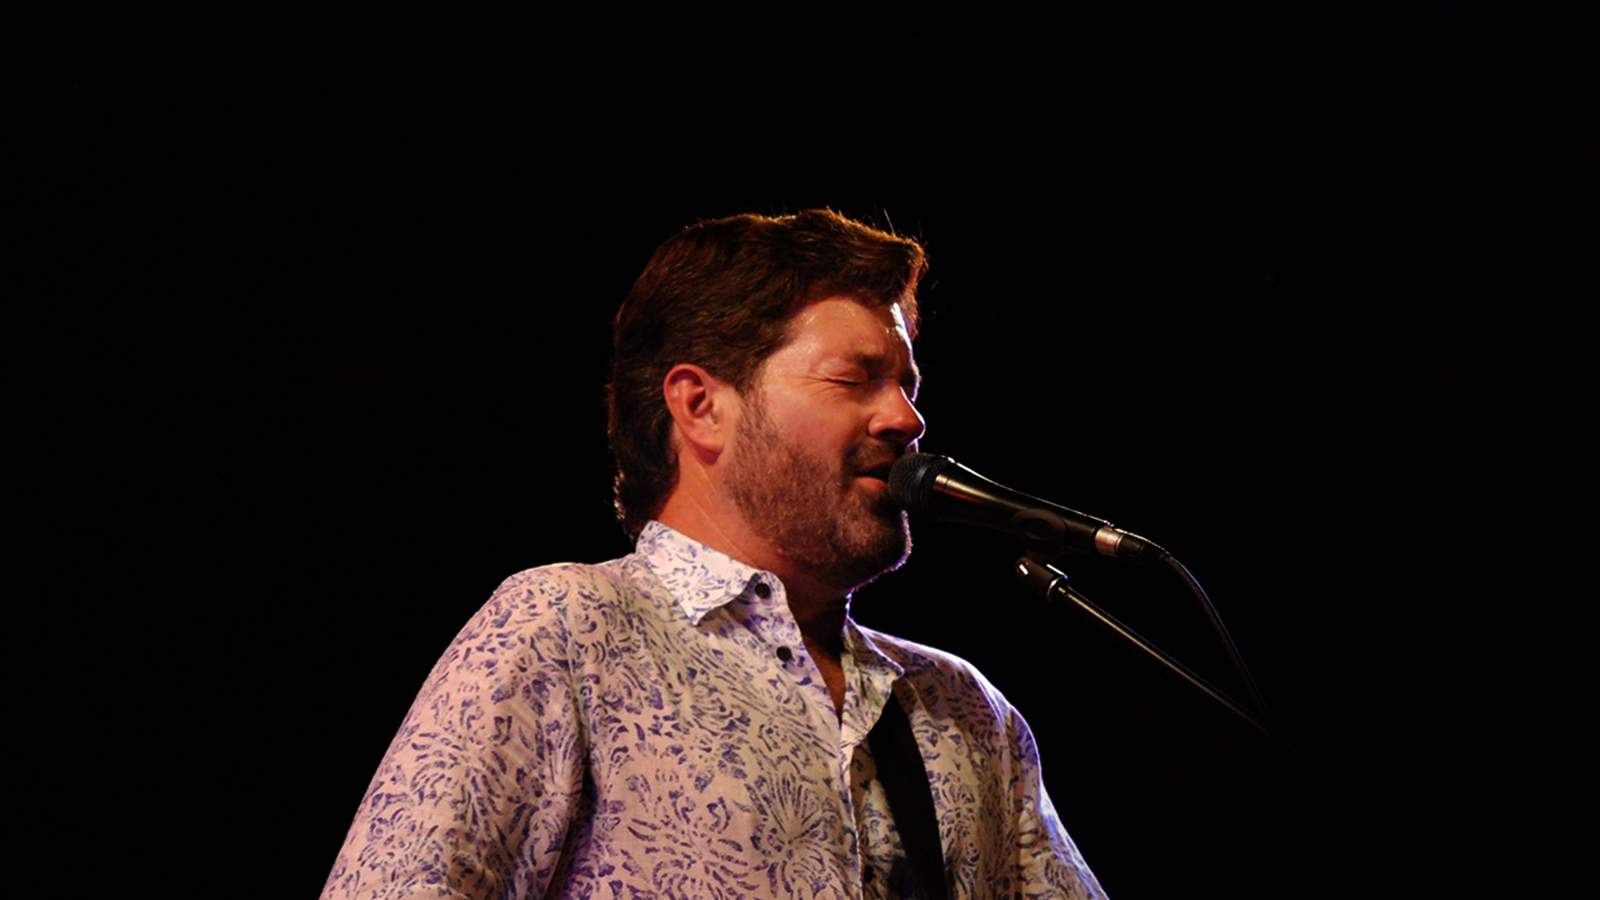 Tab Benoit (Rescheduled from 3/28/2020, 7/30/2020)